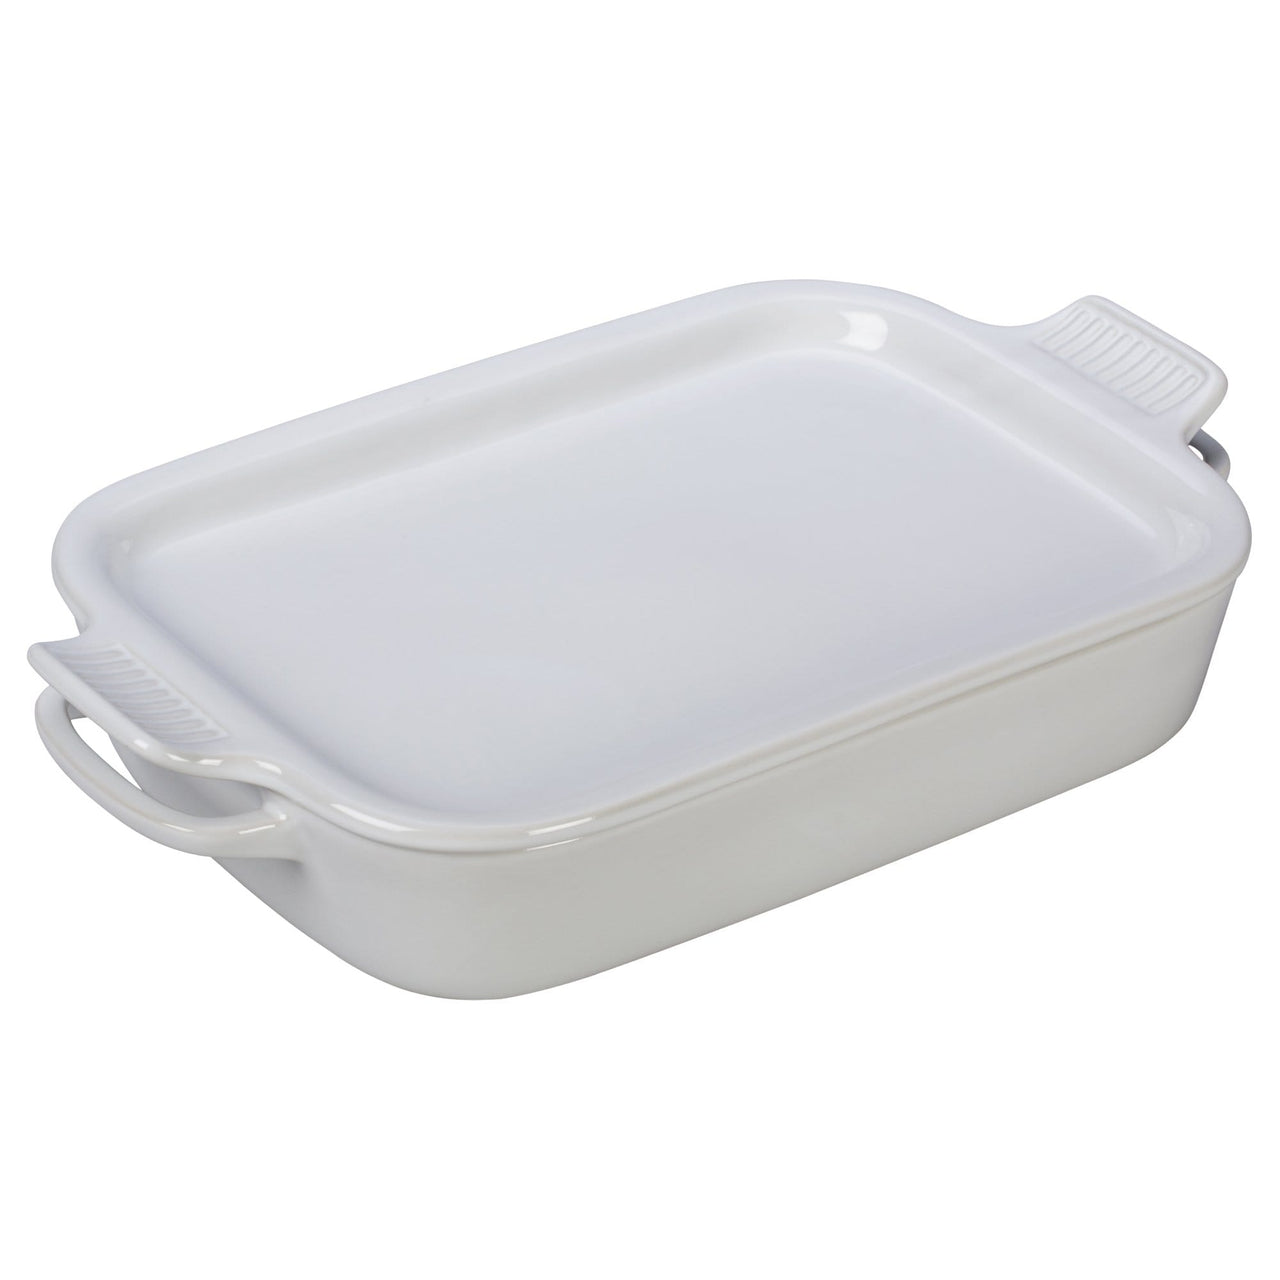 Le Creuset Cookware White Rectangular Dish with Platter Lid